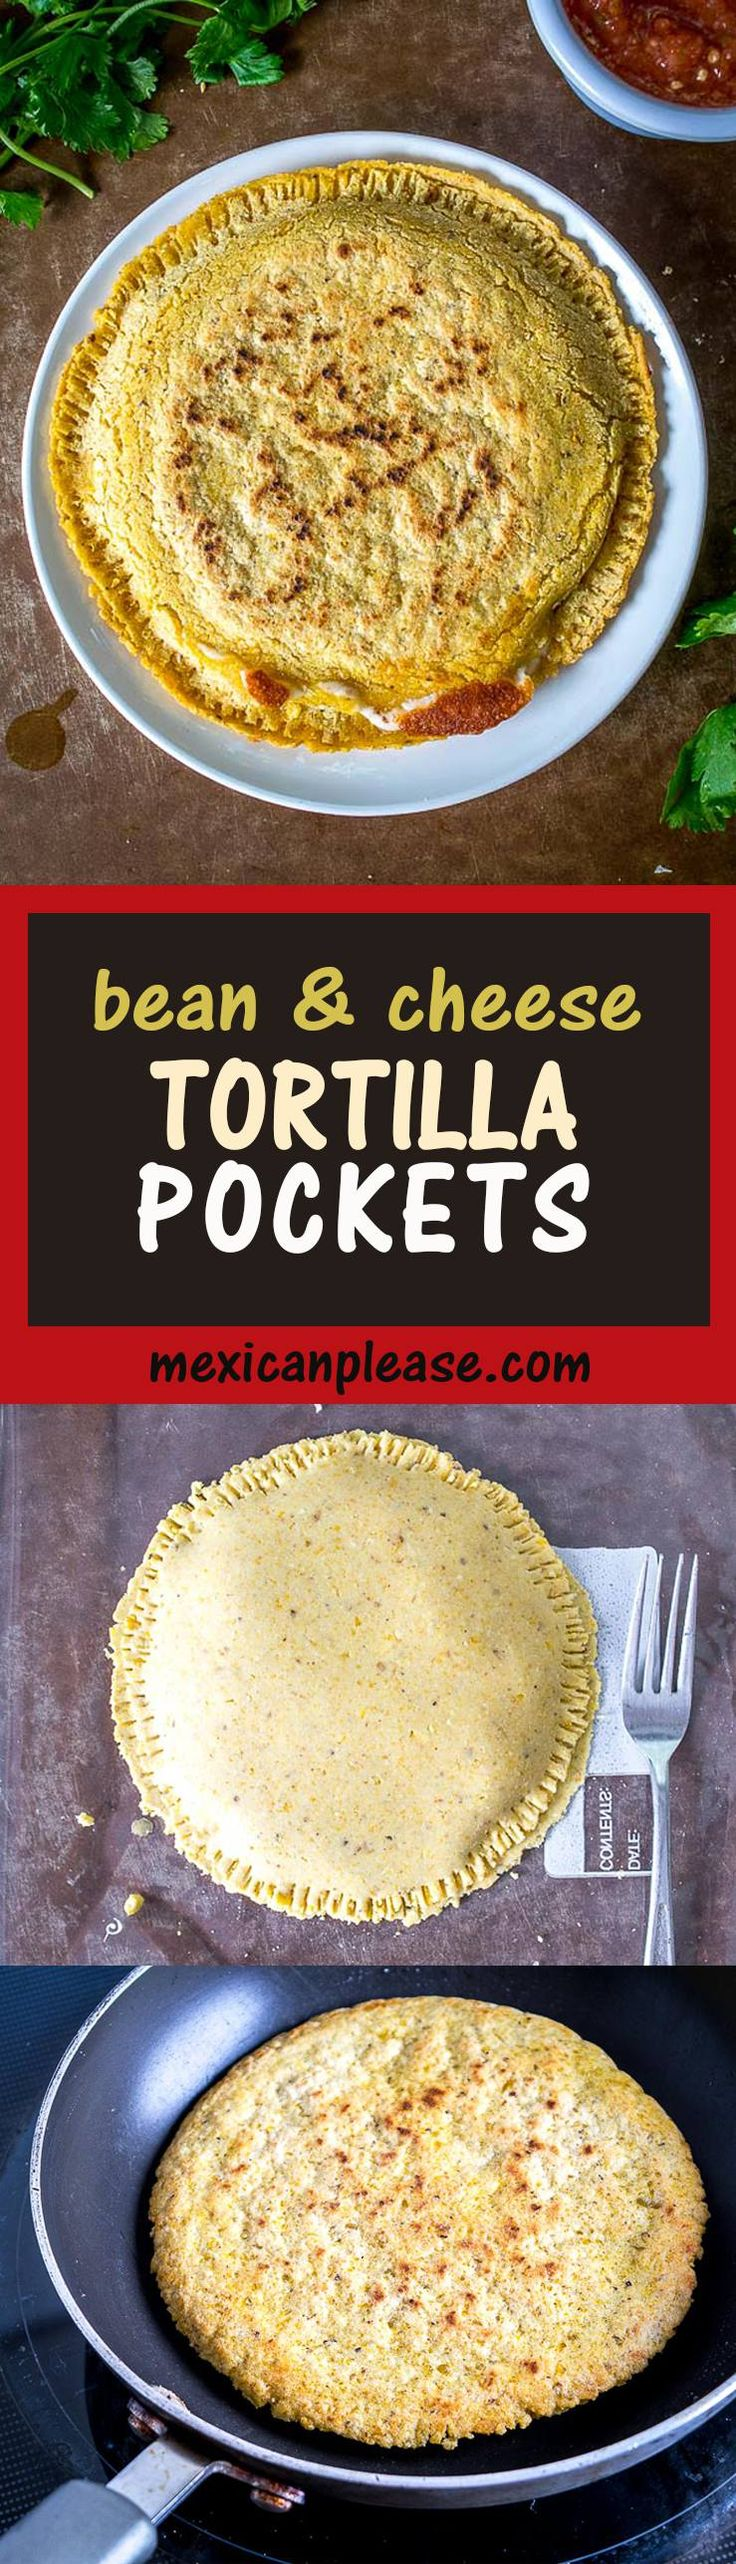 Two crispy corn tortillas surround a pocket full of spicy black beans and mozzarella cheese.  Be sure to use a bit of oil when cooking them, this will help them crisp up.  mexicanplease.com